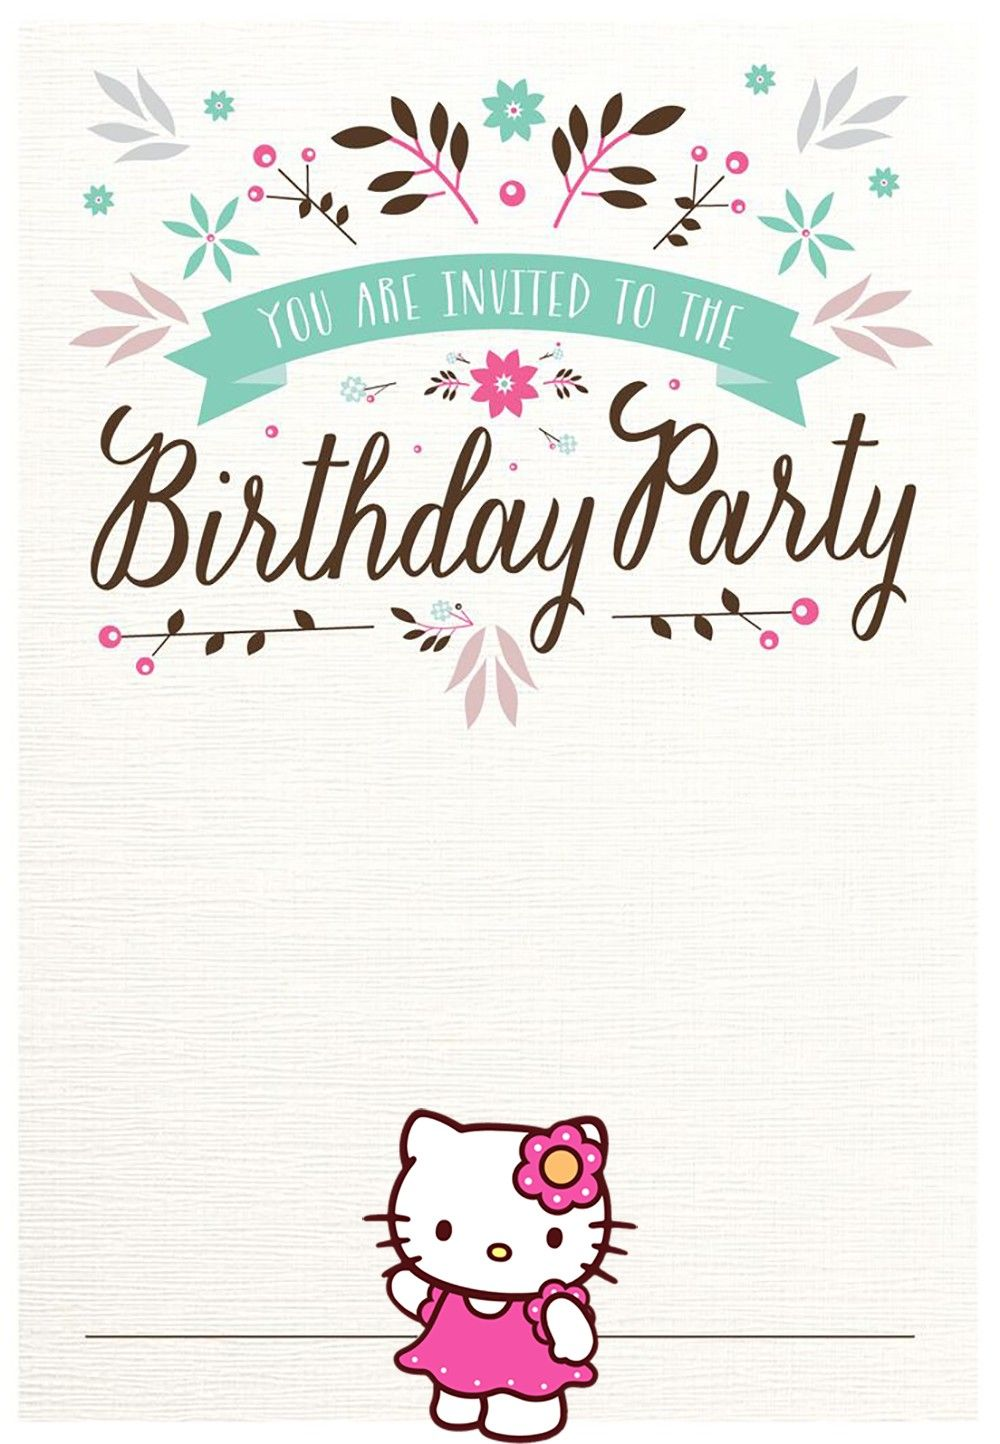 Free Hello Kitty Birthday Party Invitation Cat Birthday Party Invitations Hello Kitty Invitation Card Hello Kitty Birthday Party